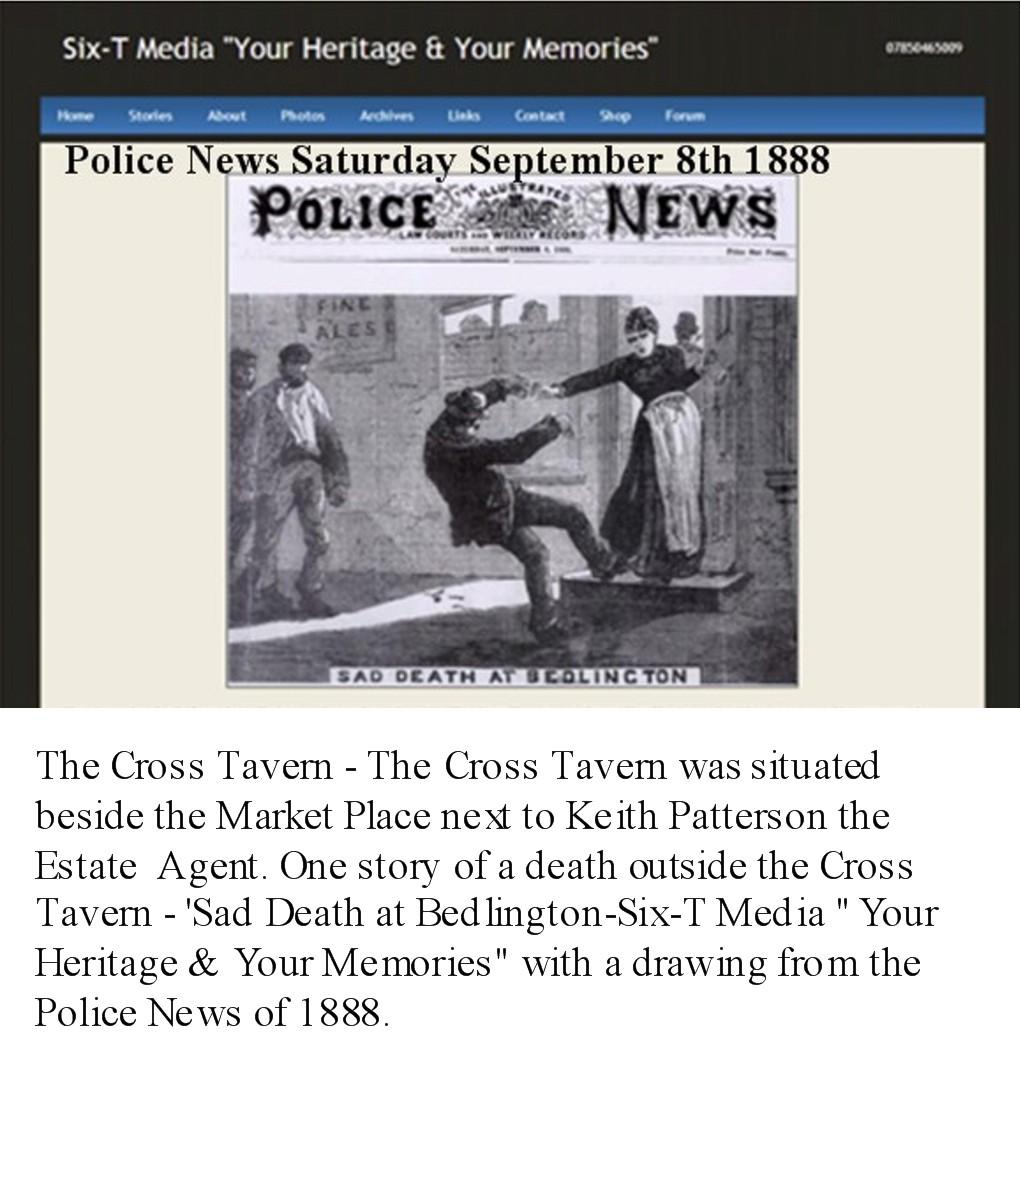 Cross Tavern